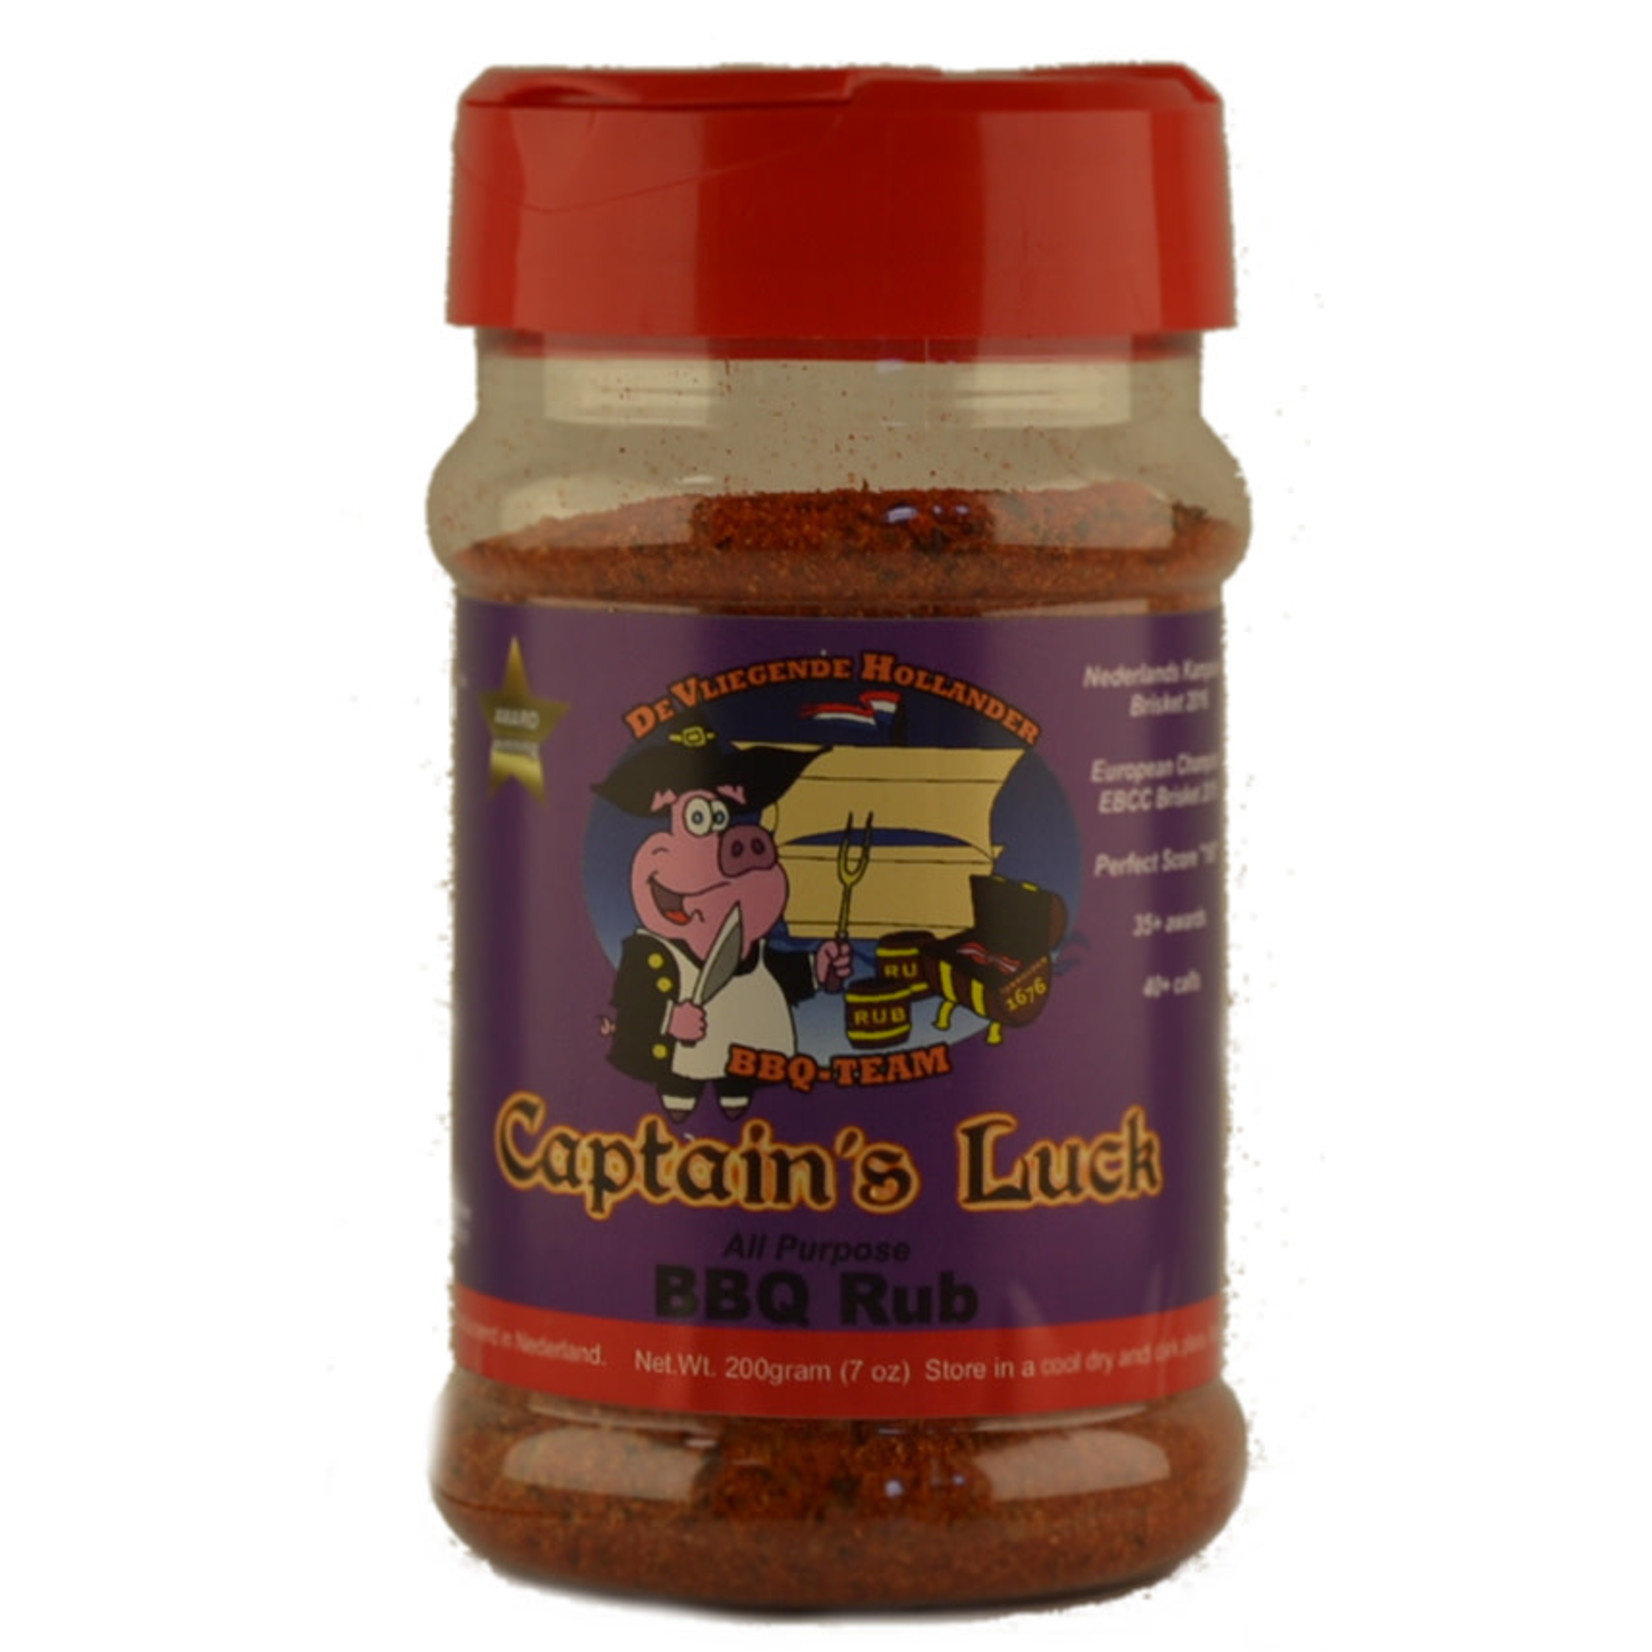 Captain's Luck Captain's Luck All Purpose BBQ rub